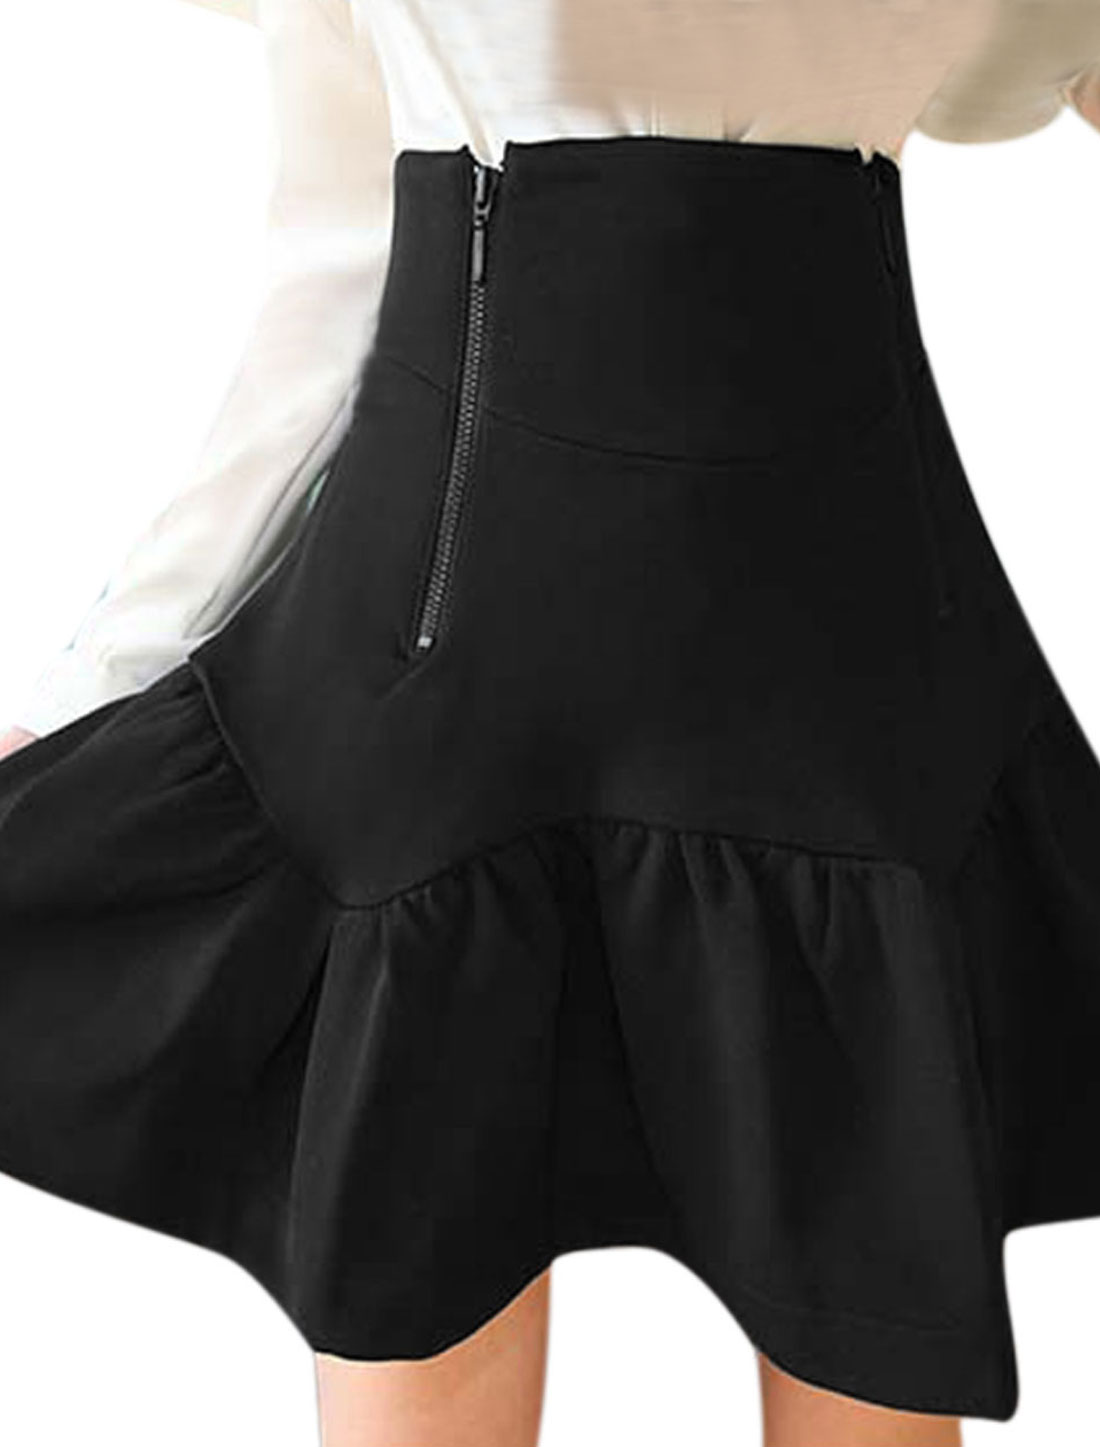 Lady High Waisted Double Zippers Back Leisure Mini Skirt Black XS